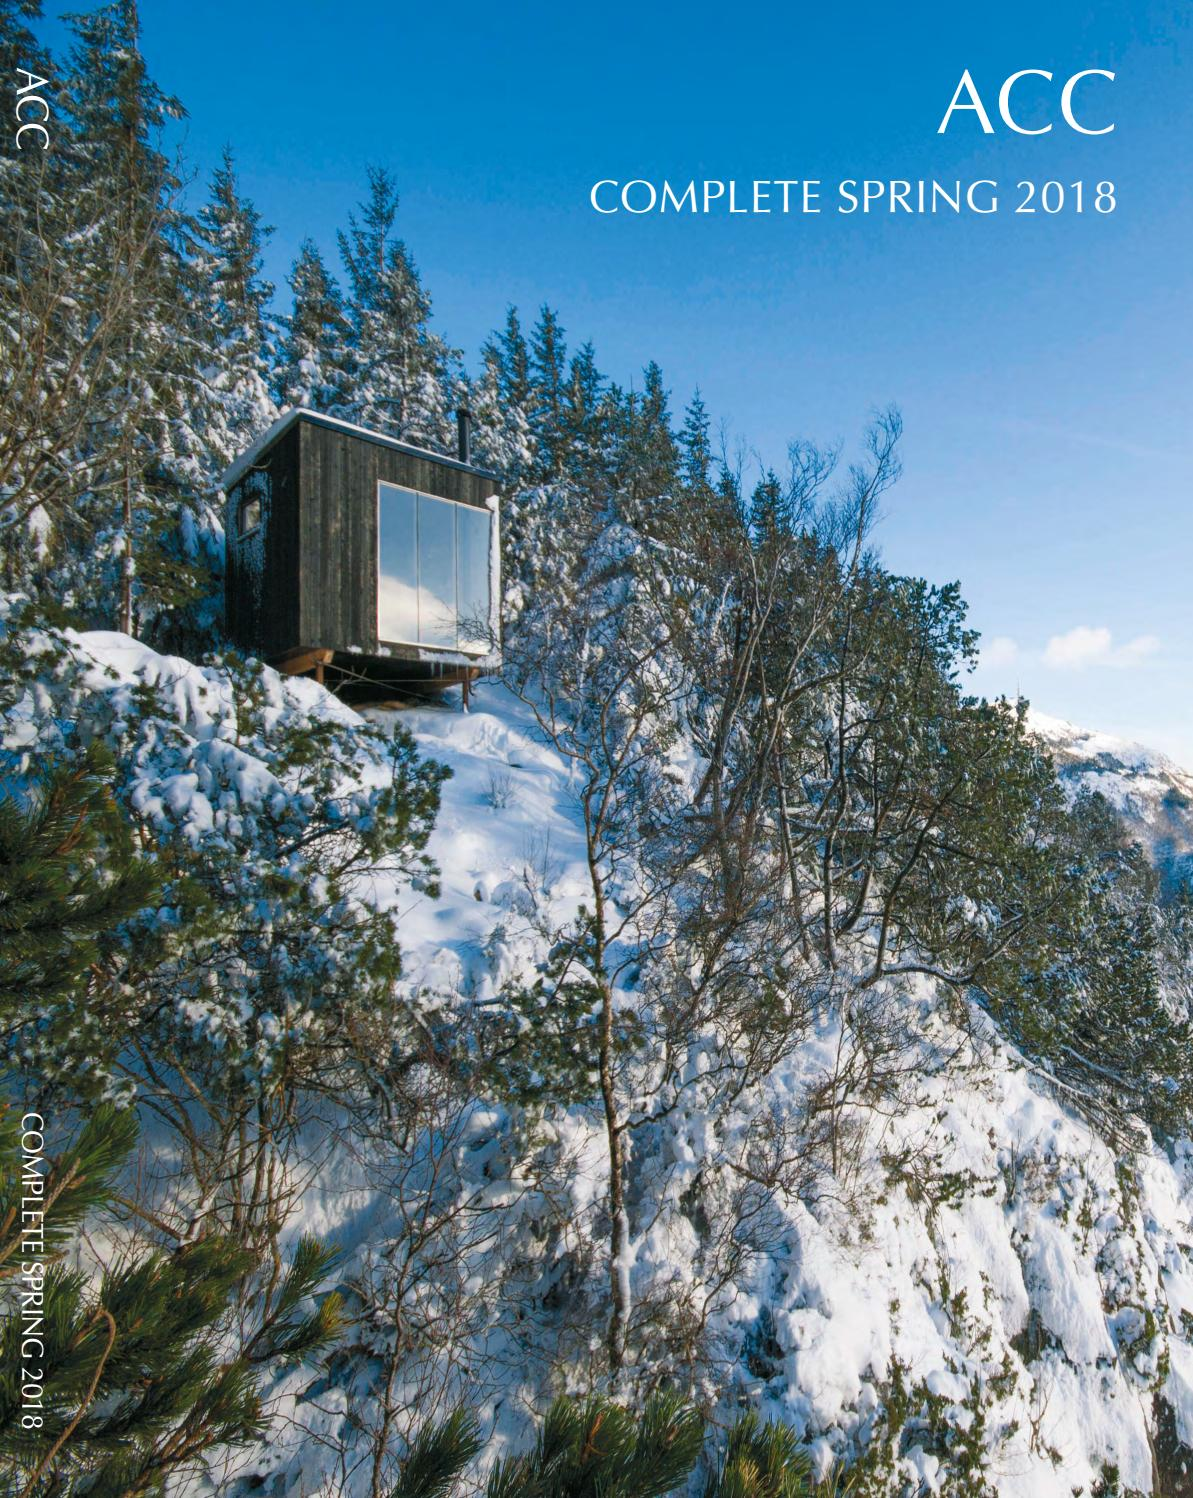 UK Complete Spring 2018 By ACC Art Books   Issuu